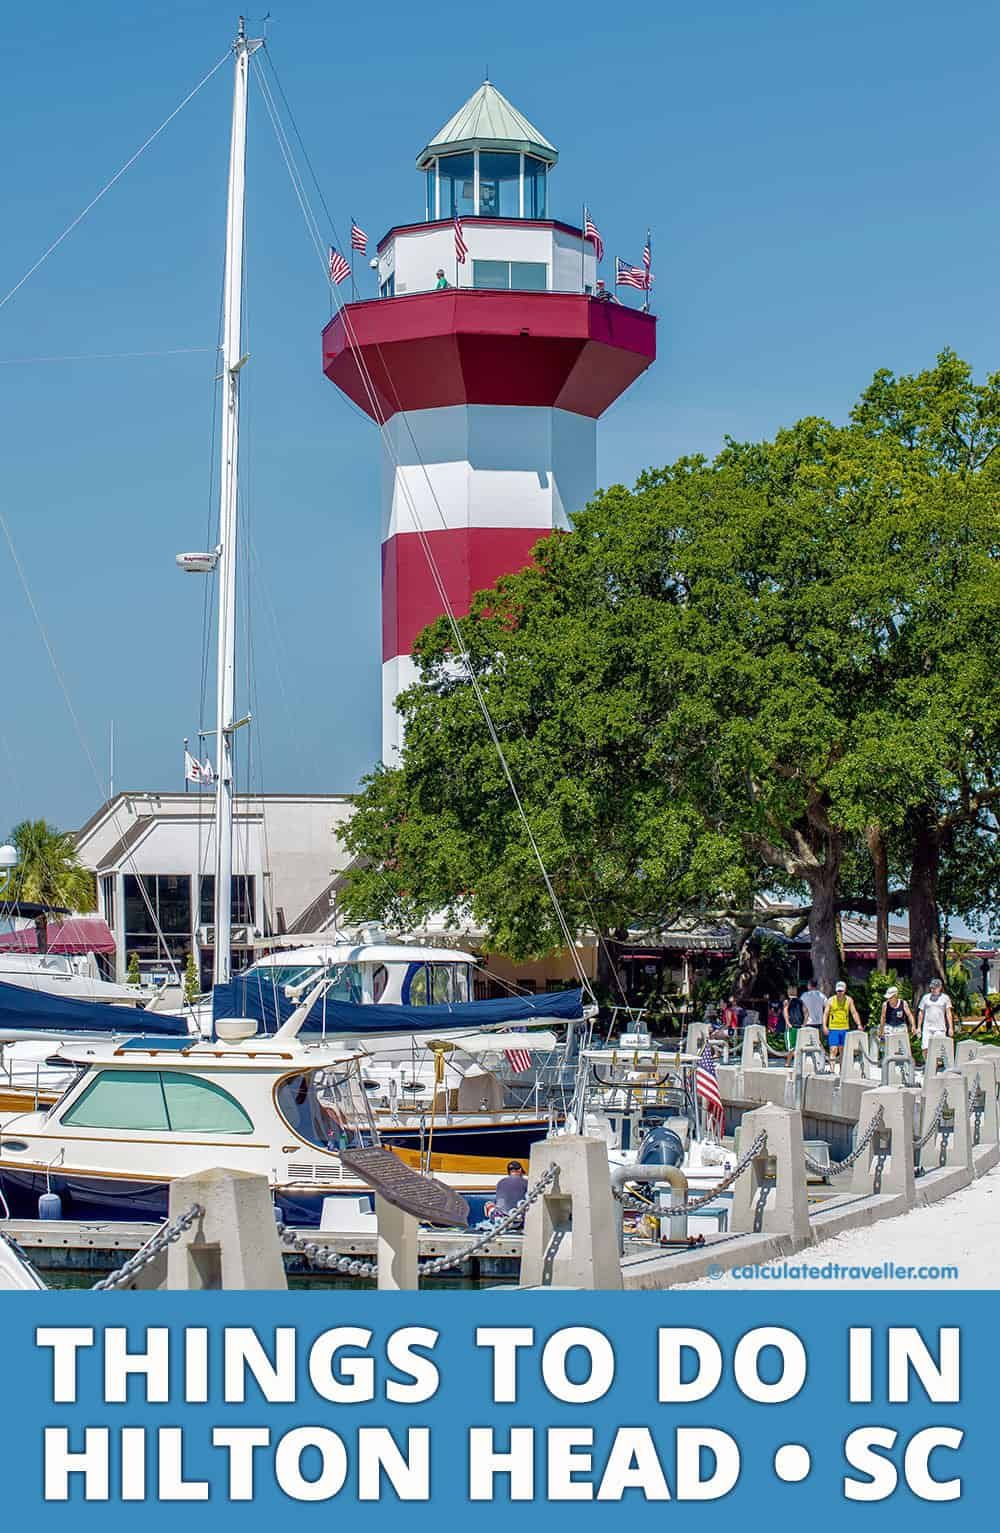 Top 5 Things To Do In Hilton Head South Carolina (With